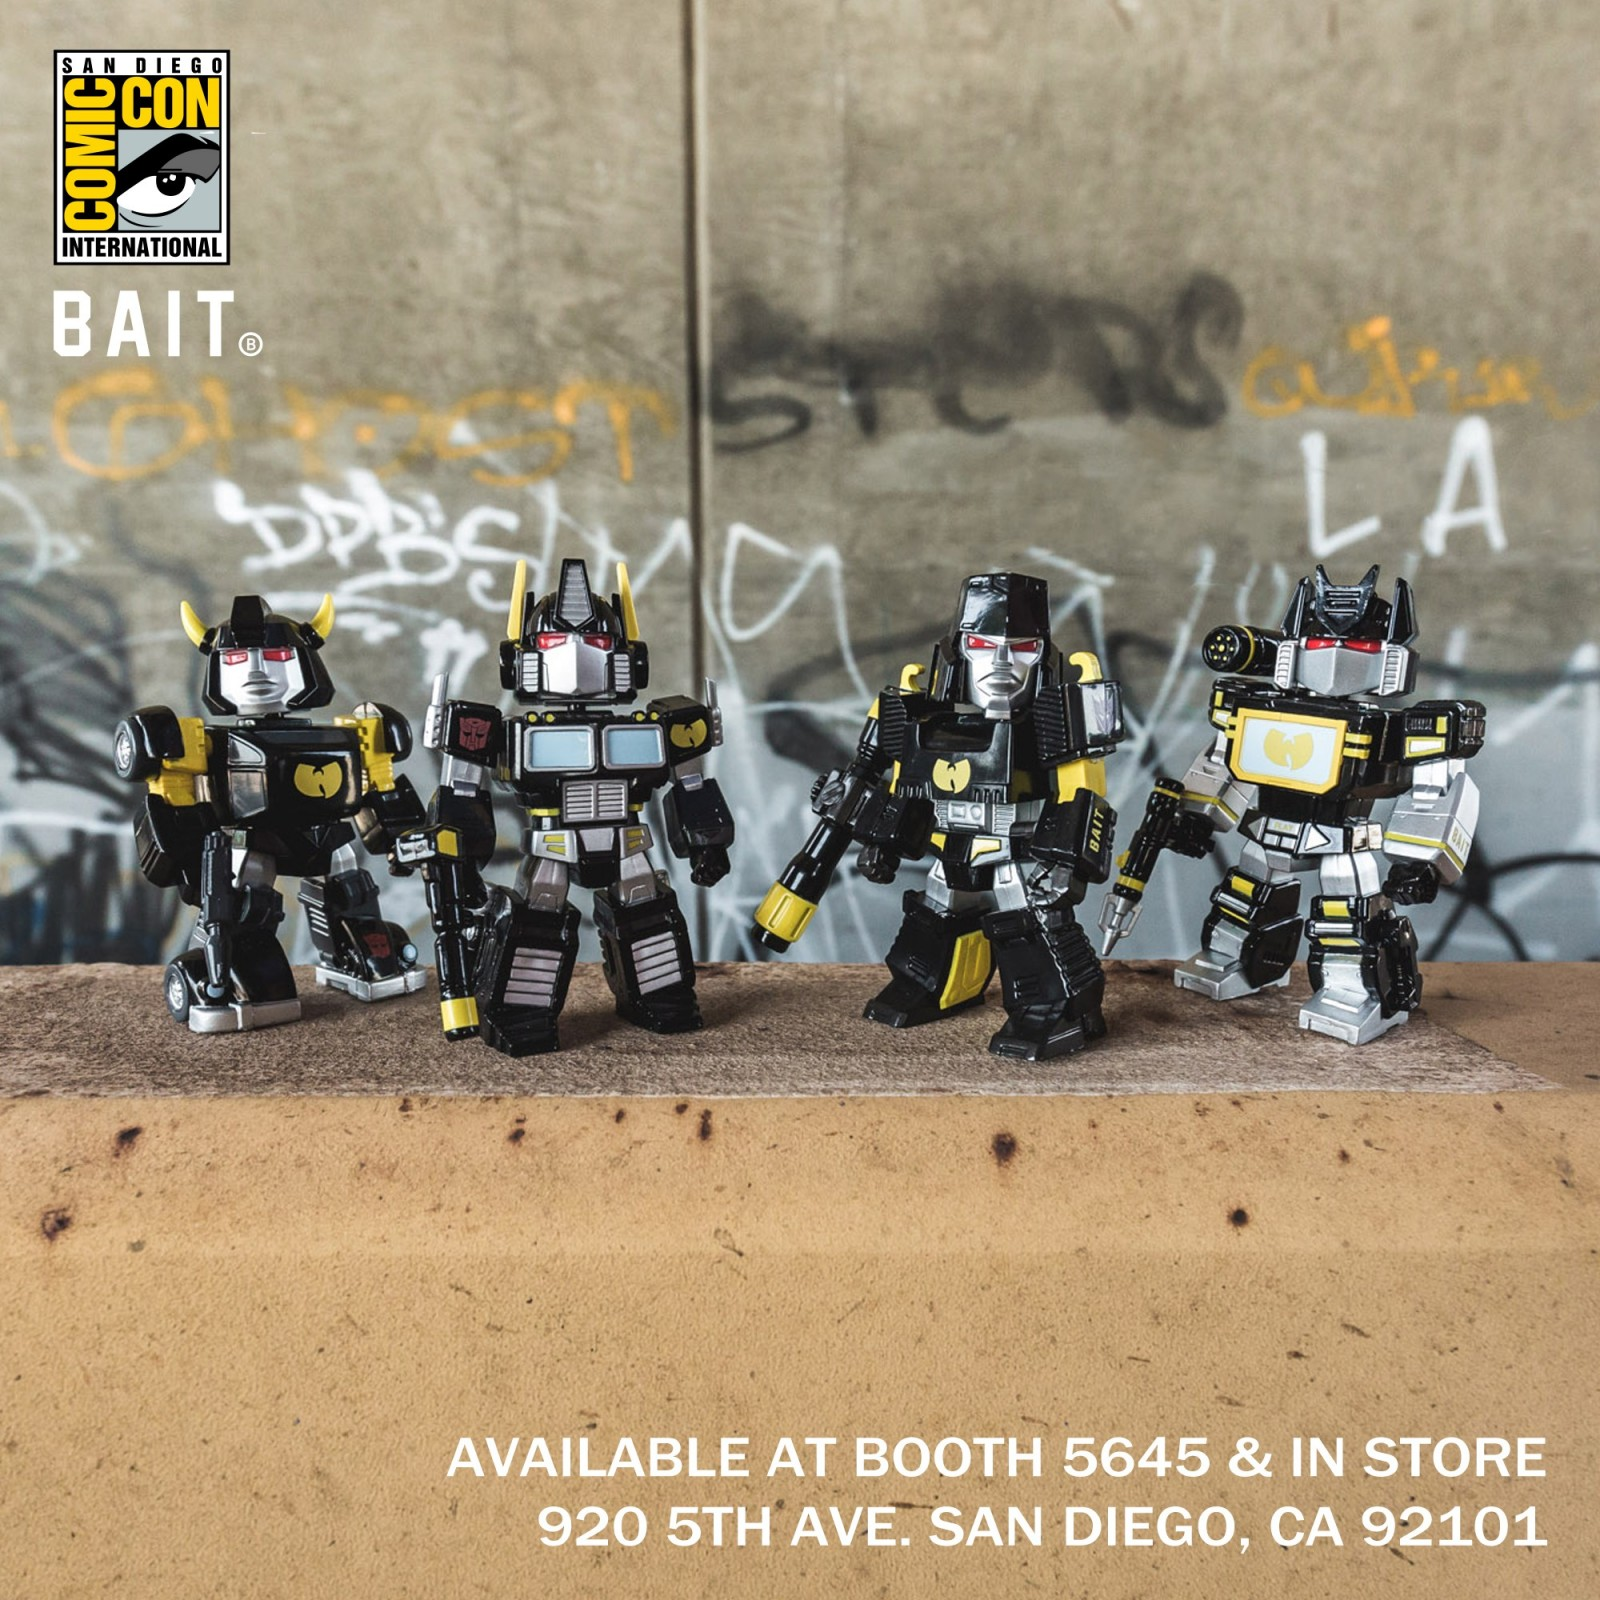 Transformers News: Image of BAIT Transformers San Diego Comic-Con Exclusive Figures Released #SDCC2018